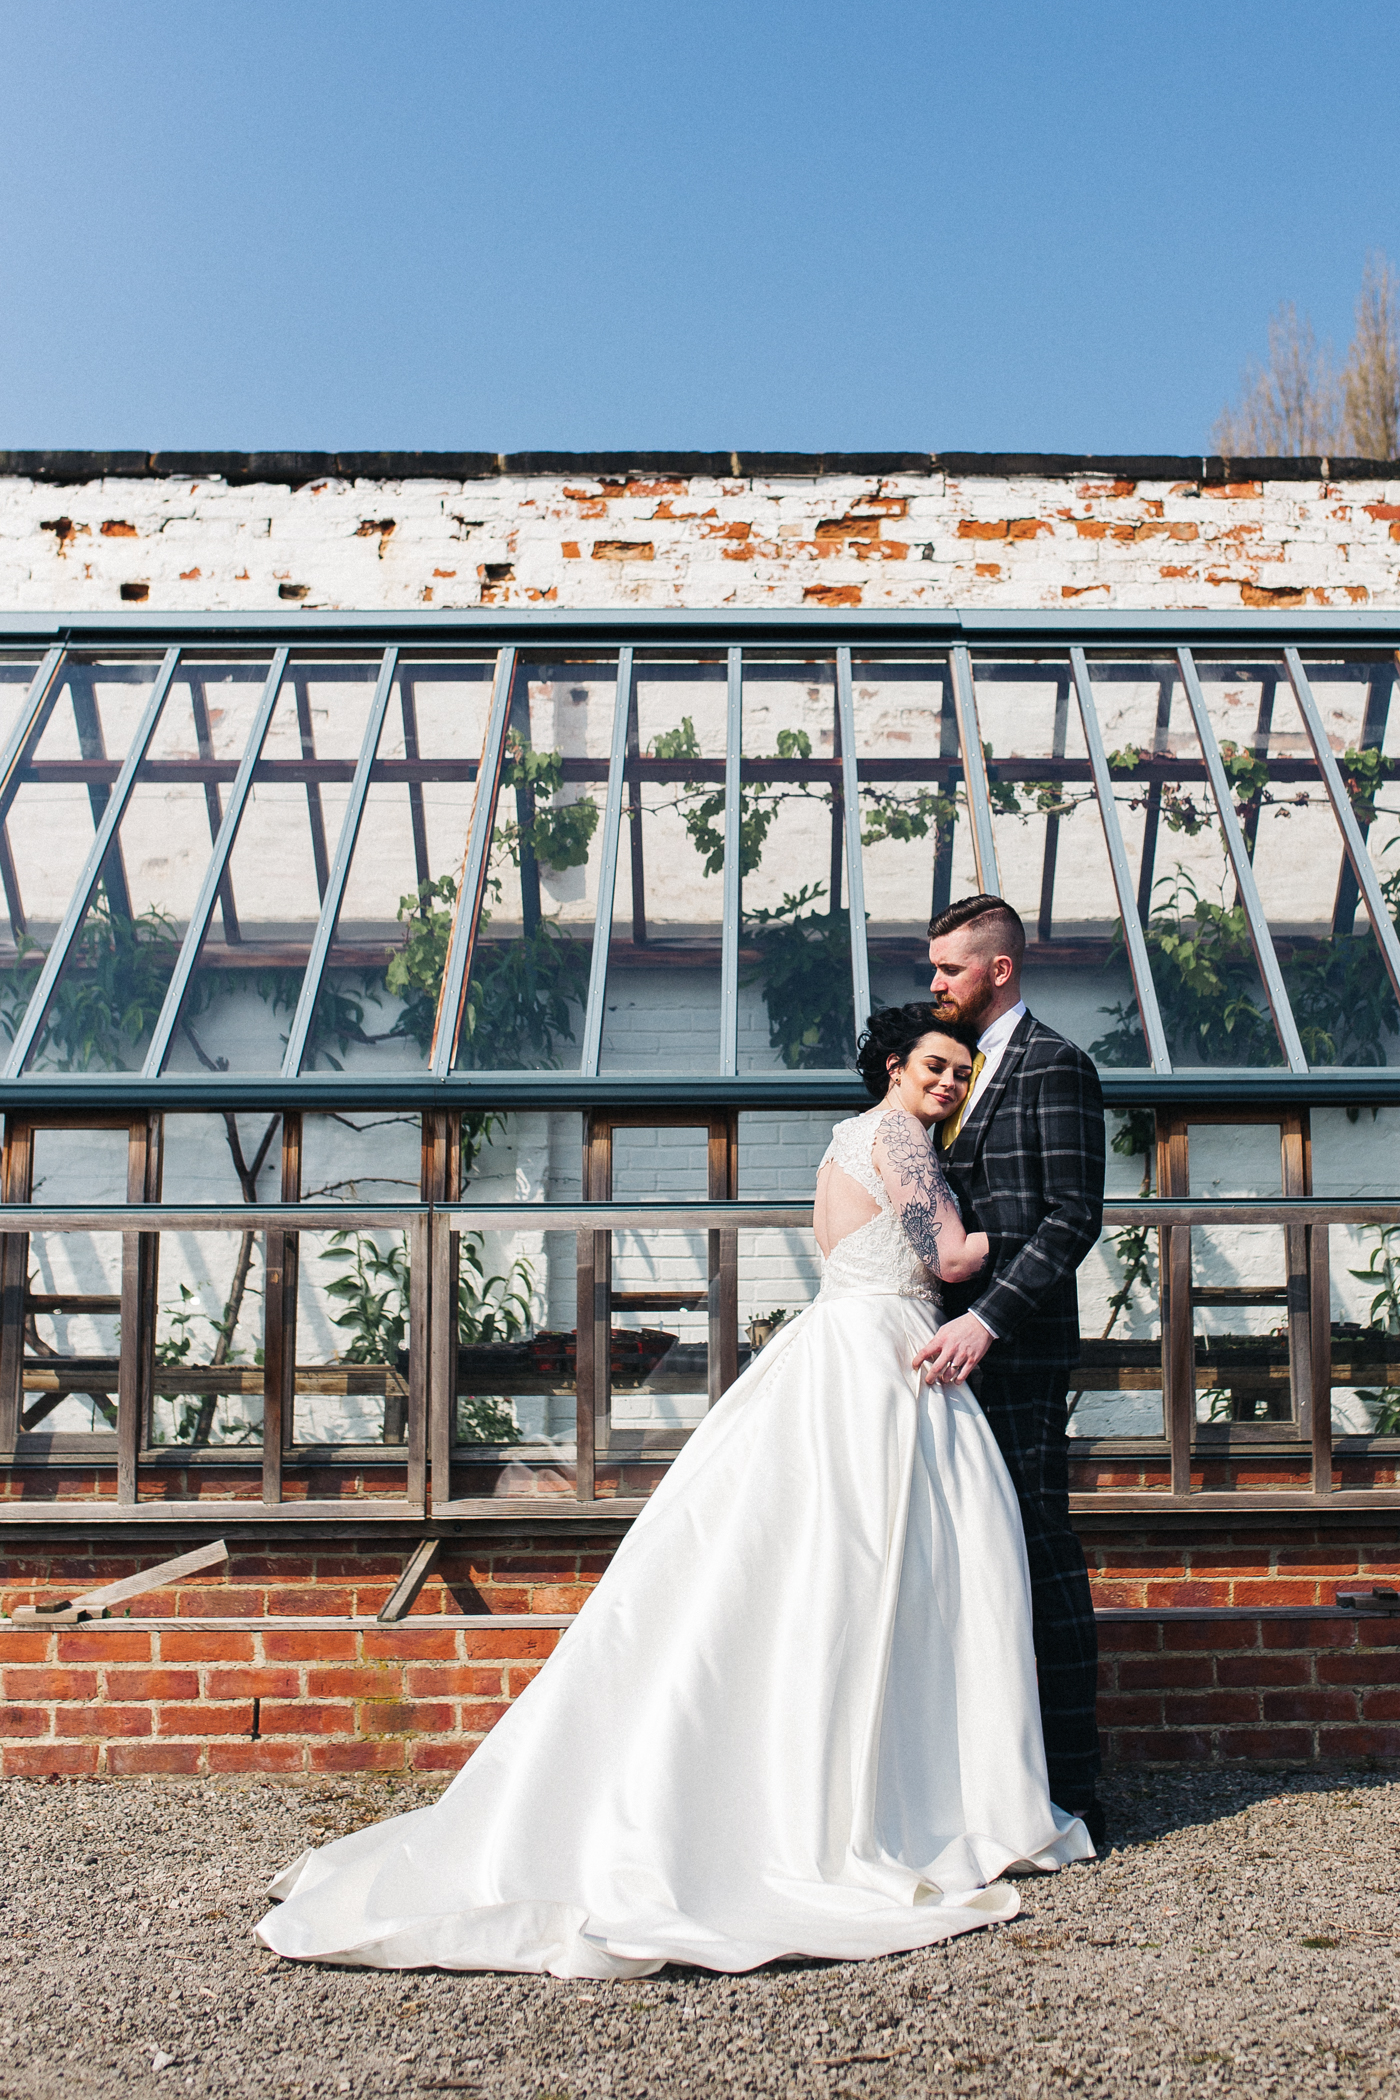 the bride and groom stand in front of a victorian greenhouse. preston park museum wedding stockton teesside middlesbrough wedding photographer